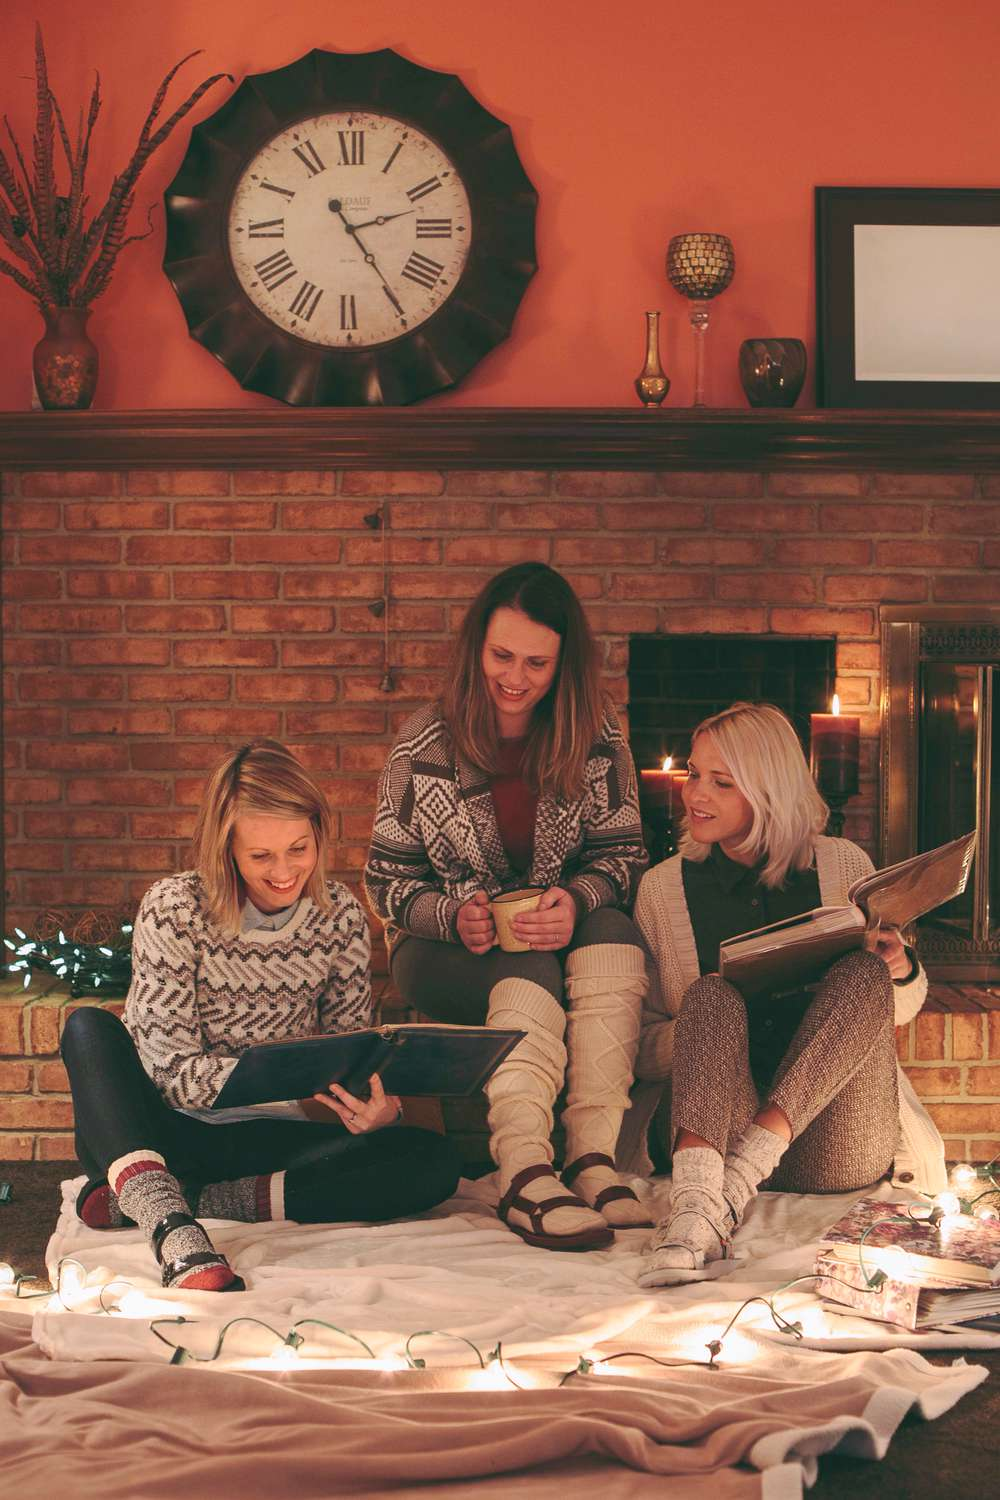 Kate Rentz and her sisters catch up while looking at old photo albums in Ohio, wearing Teva Original sandals.